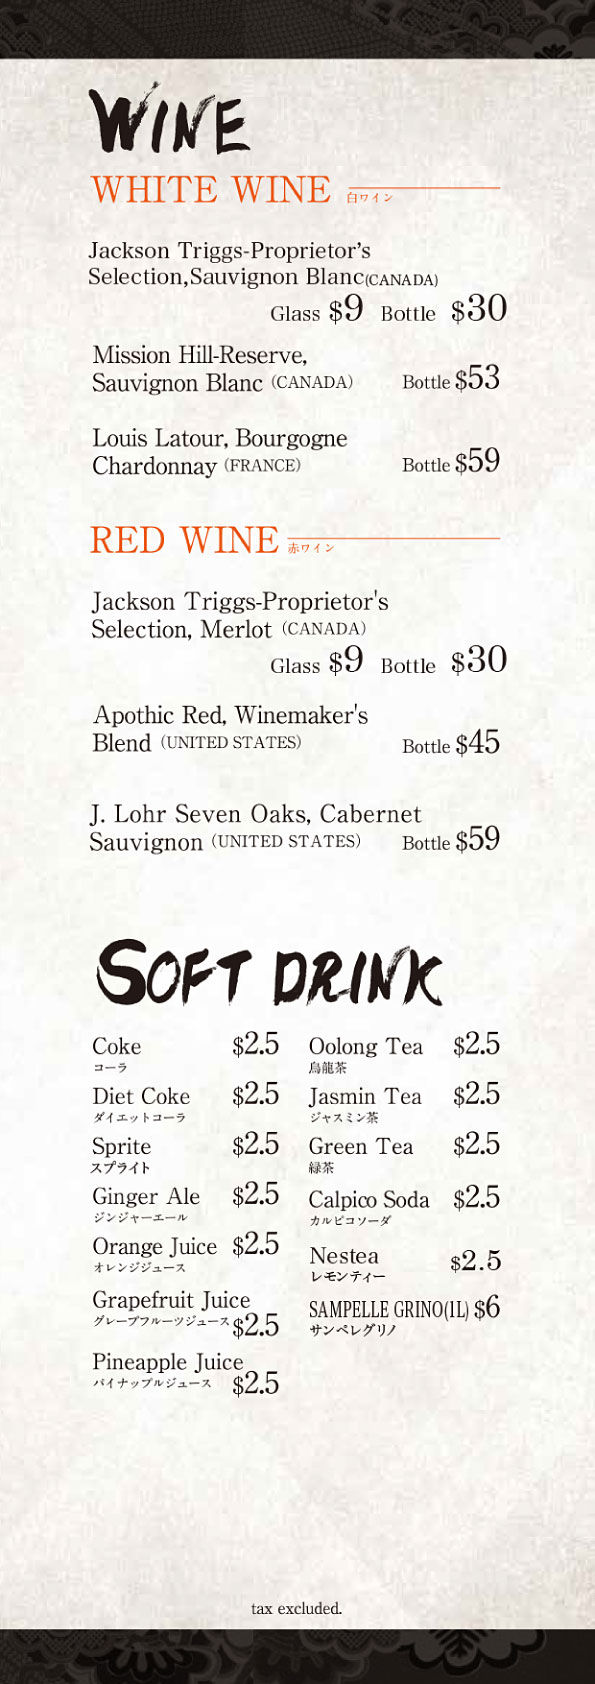 WINE and SOFT DRINK